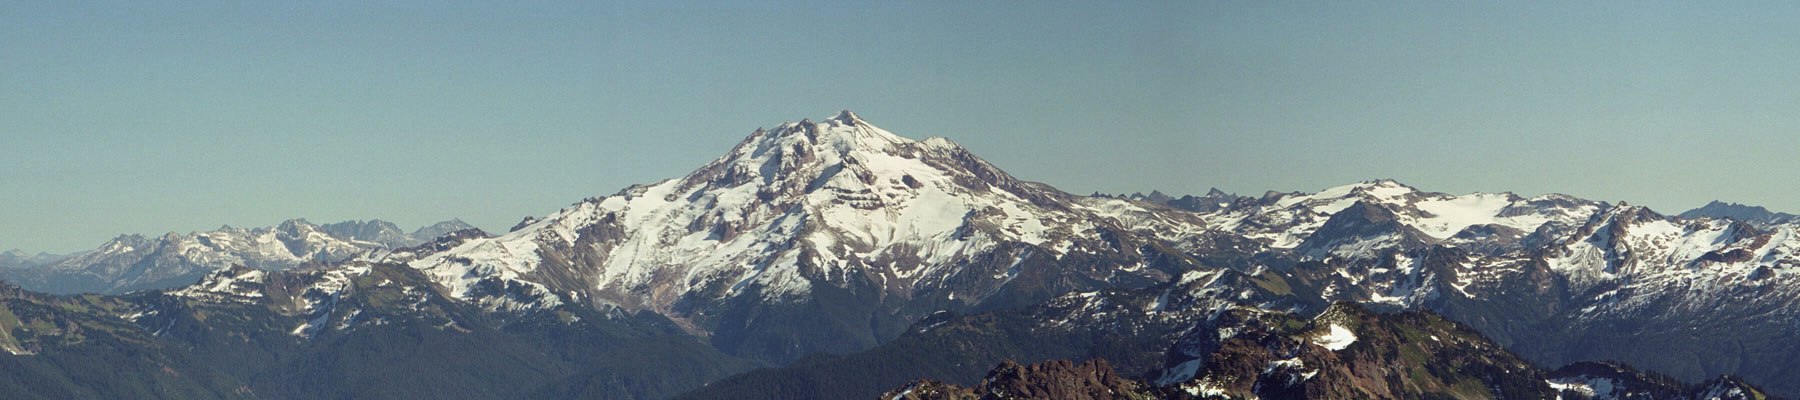 Skiing the Cascade Volcanoes: Glacier Peak